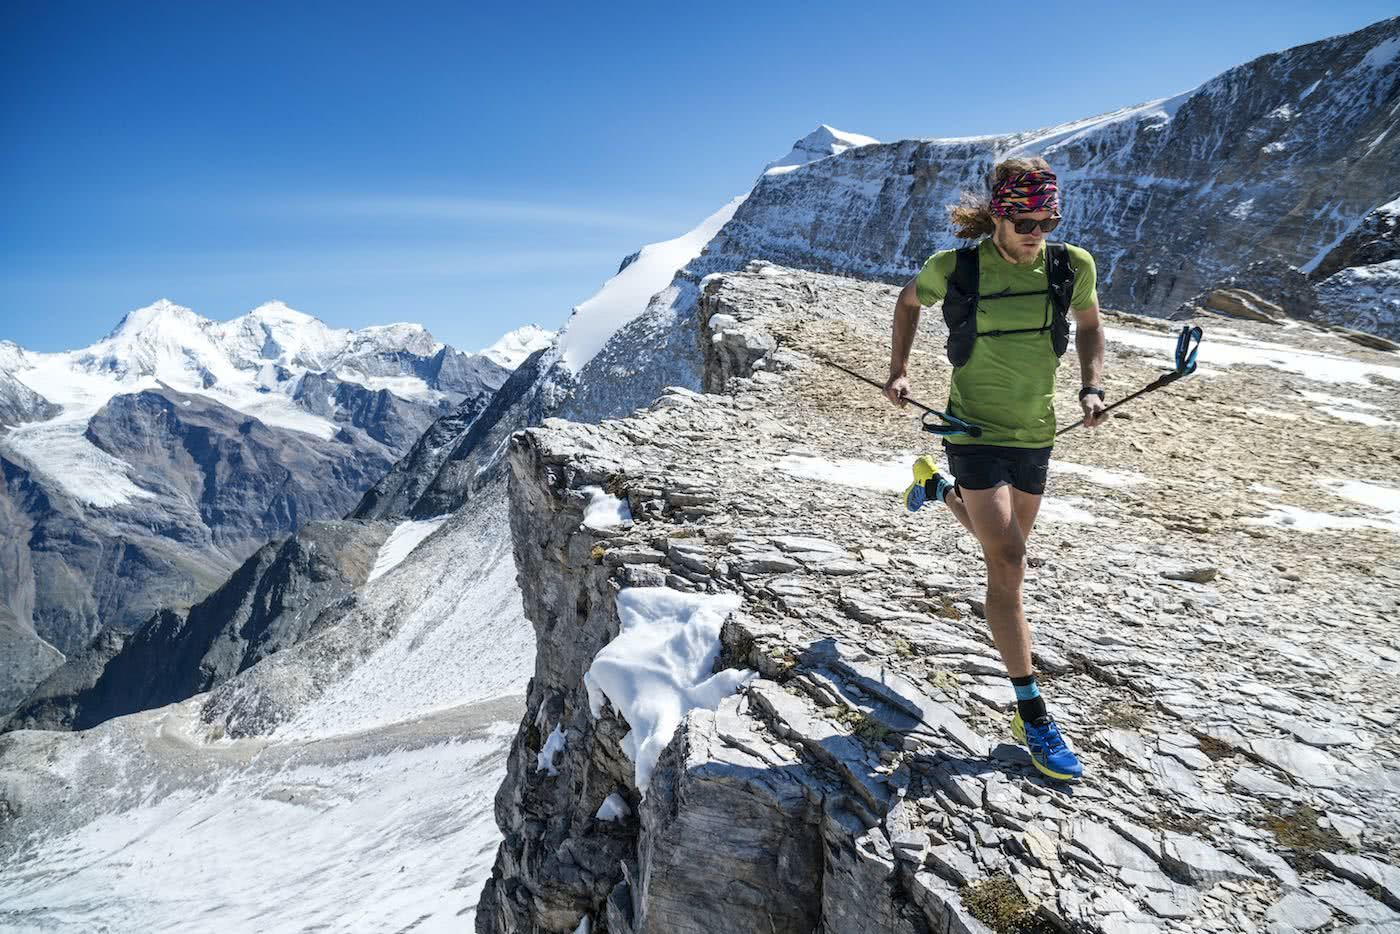 Runner Guy // An Interview With Trail Runner Joe Grant, Photo by Dan Patitucci, running poles, cliff edge, mountain, snow